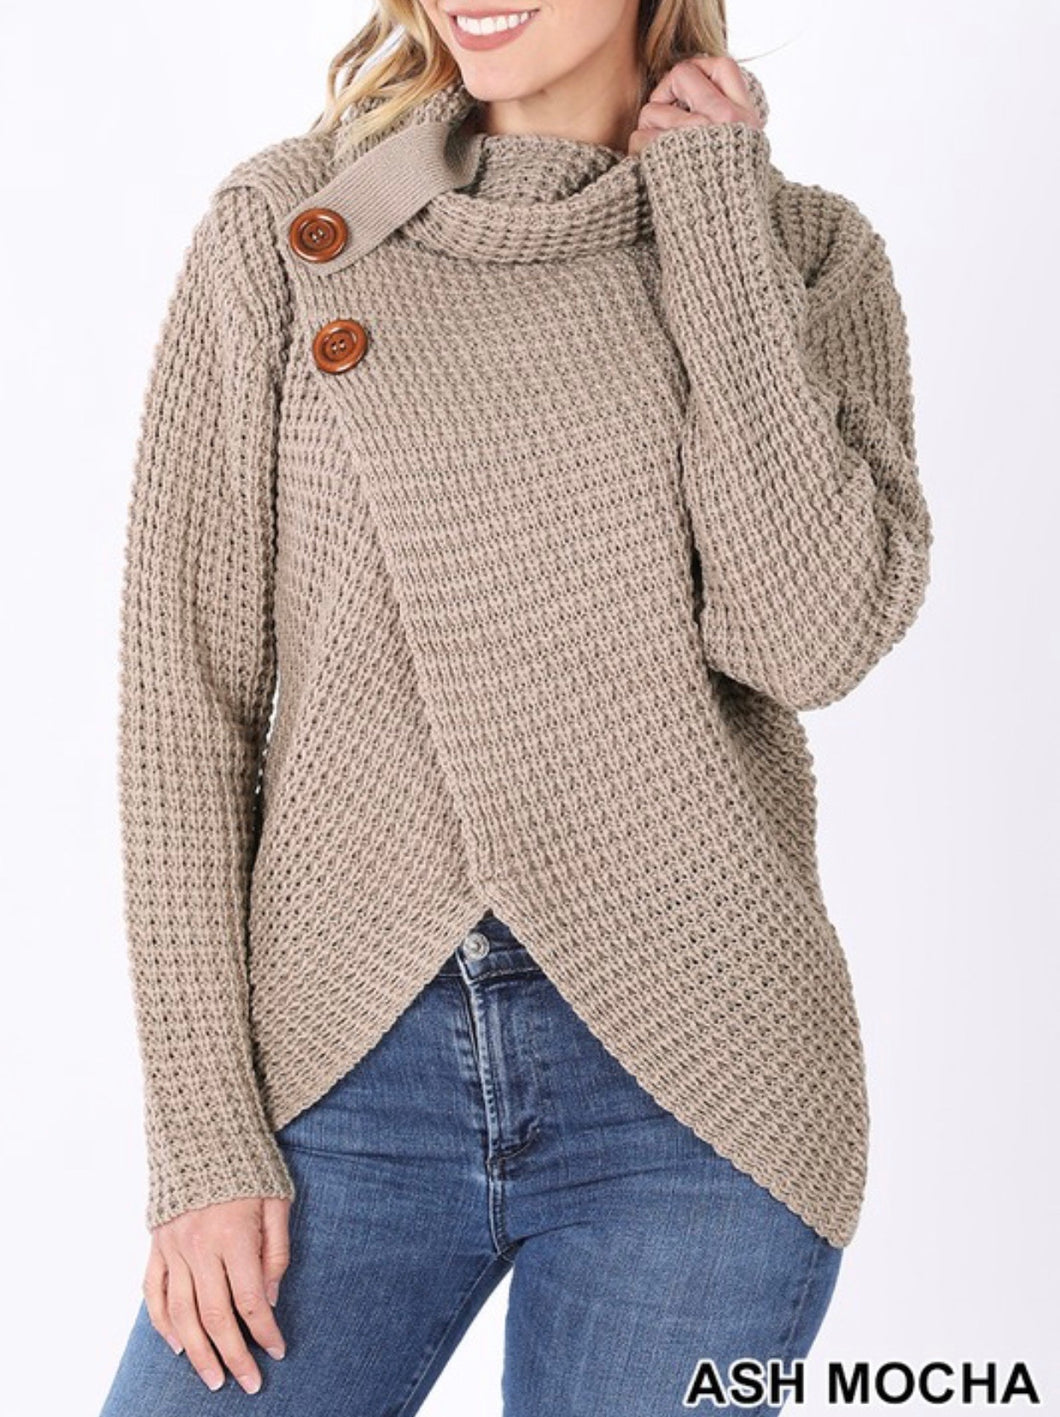 Autumn Leaves Cowl Neck Sweater - Mocha